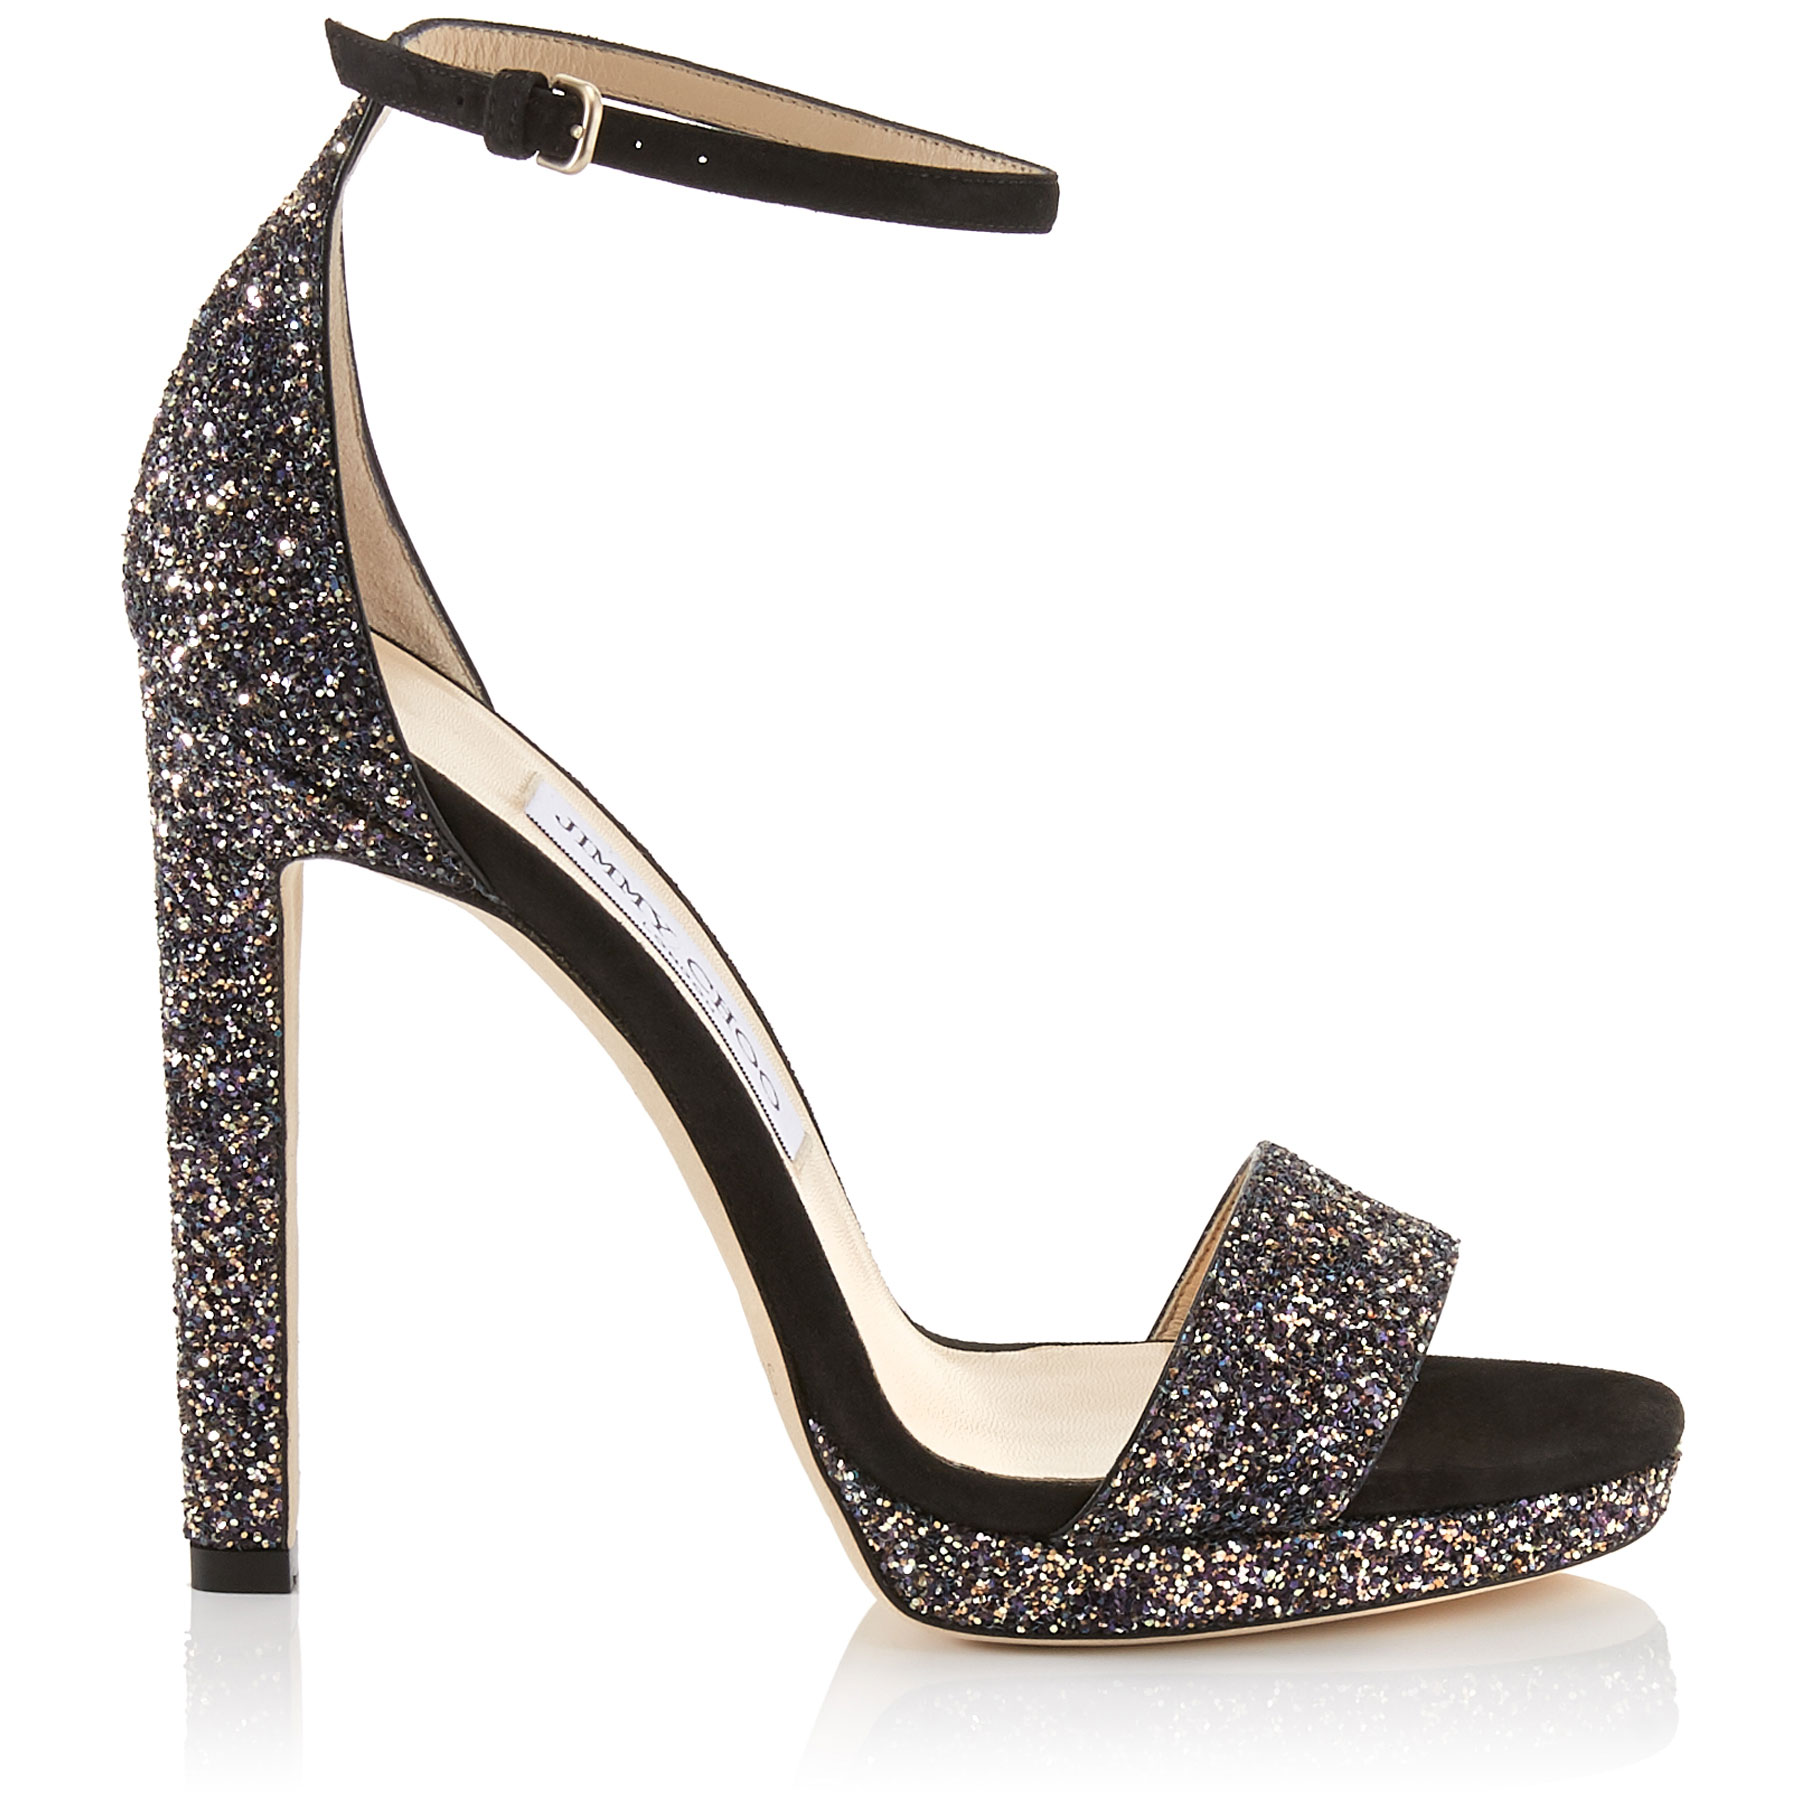 Misty 120 Black Suede And Glitzy Glitter Fabric Platform Sandals, Twilight